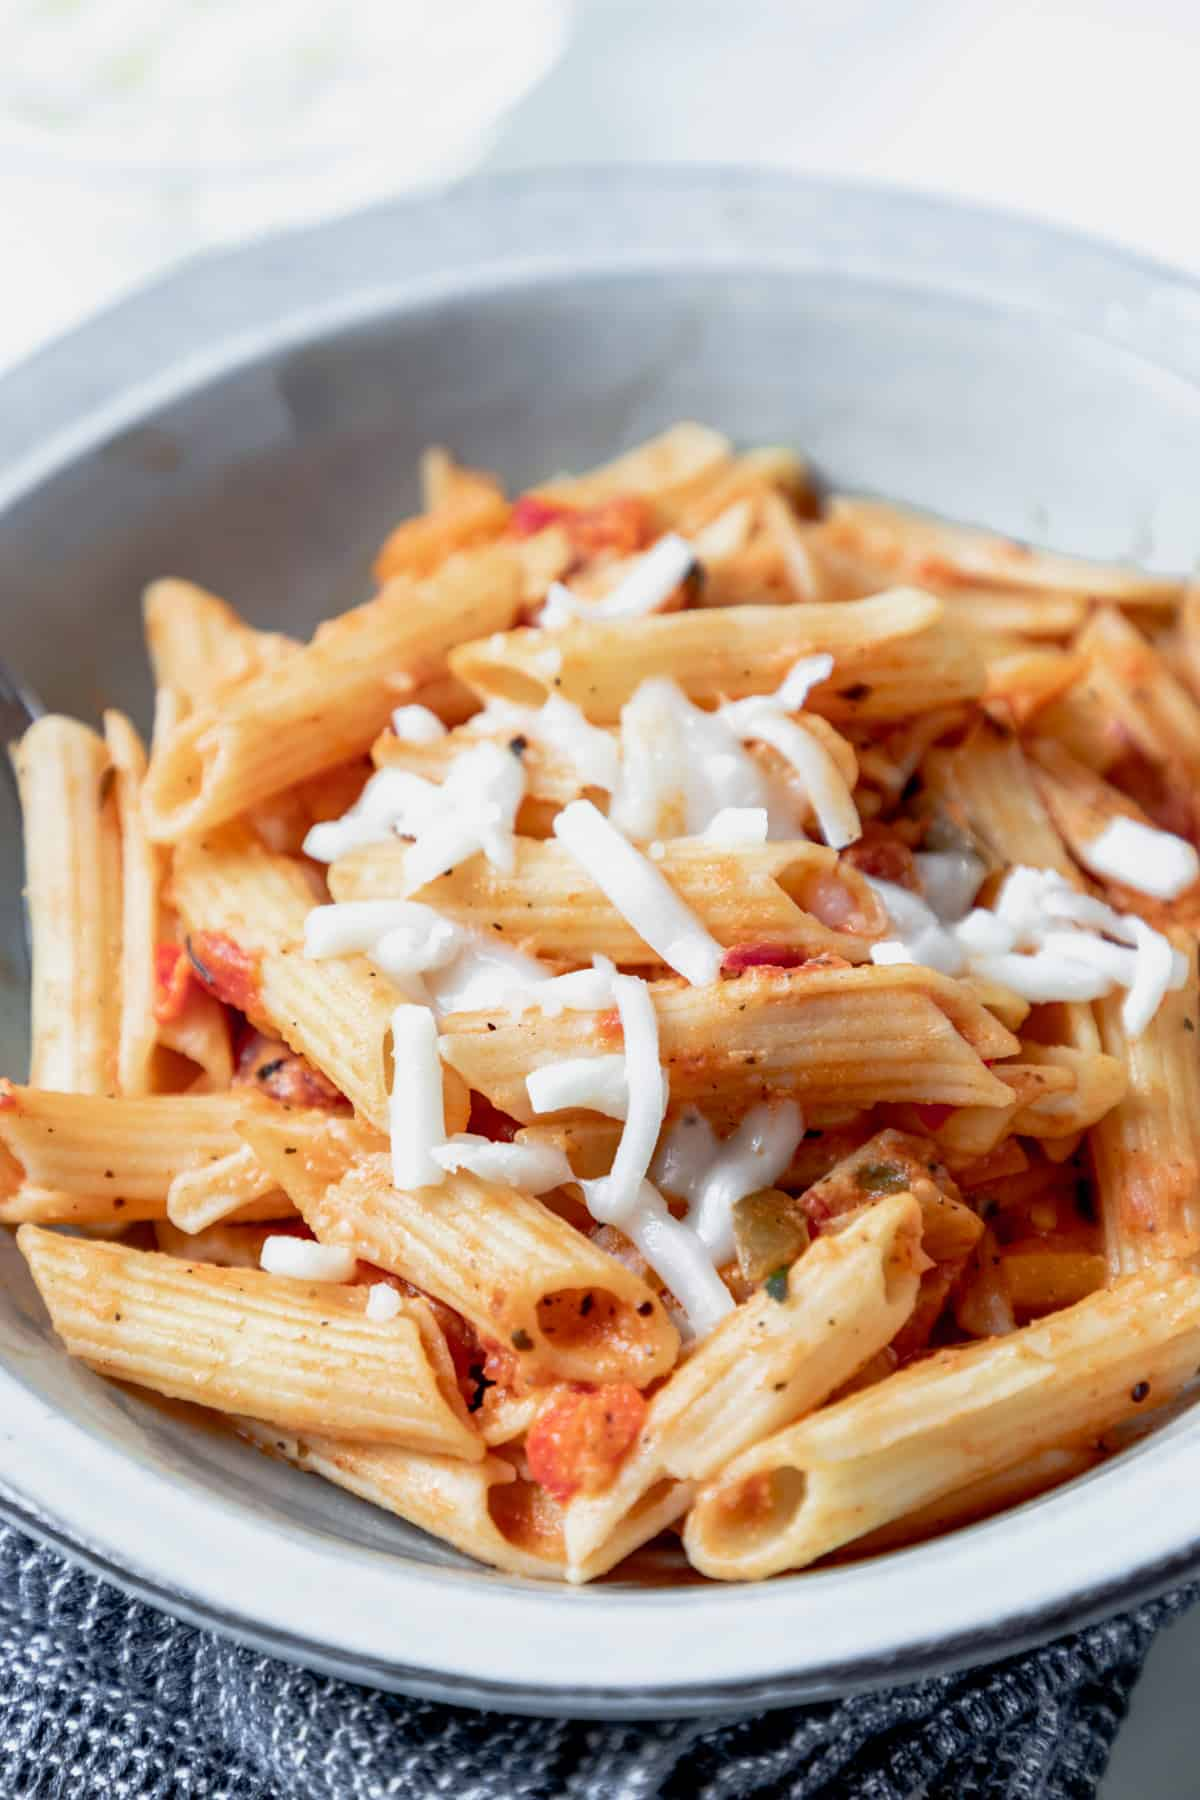 Gluten-free pink sauce pasta made with coconut milk. This pink pasta recipe is healthy and can be made vegan. The pasta is easy to make and is an ideal dinner recipe for a busy workday.